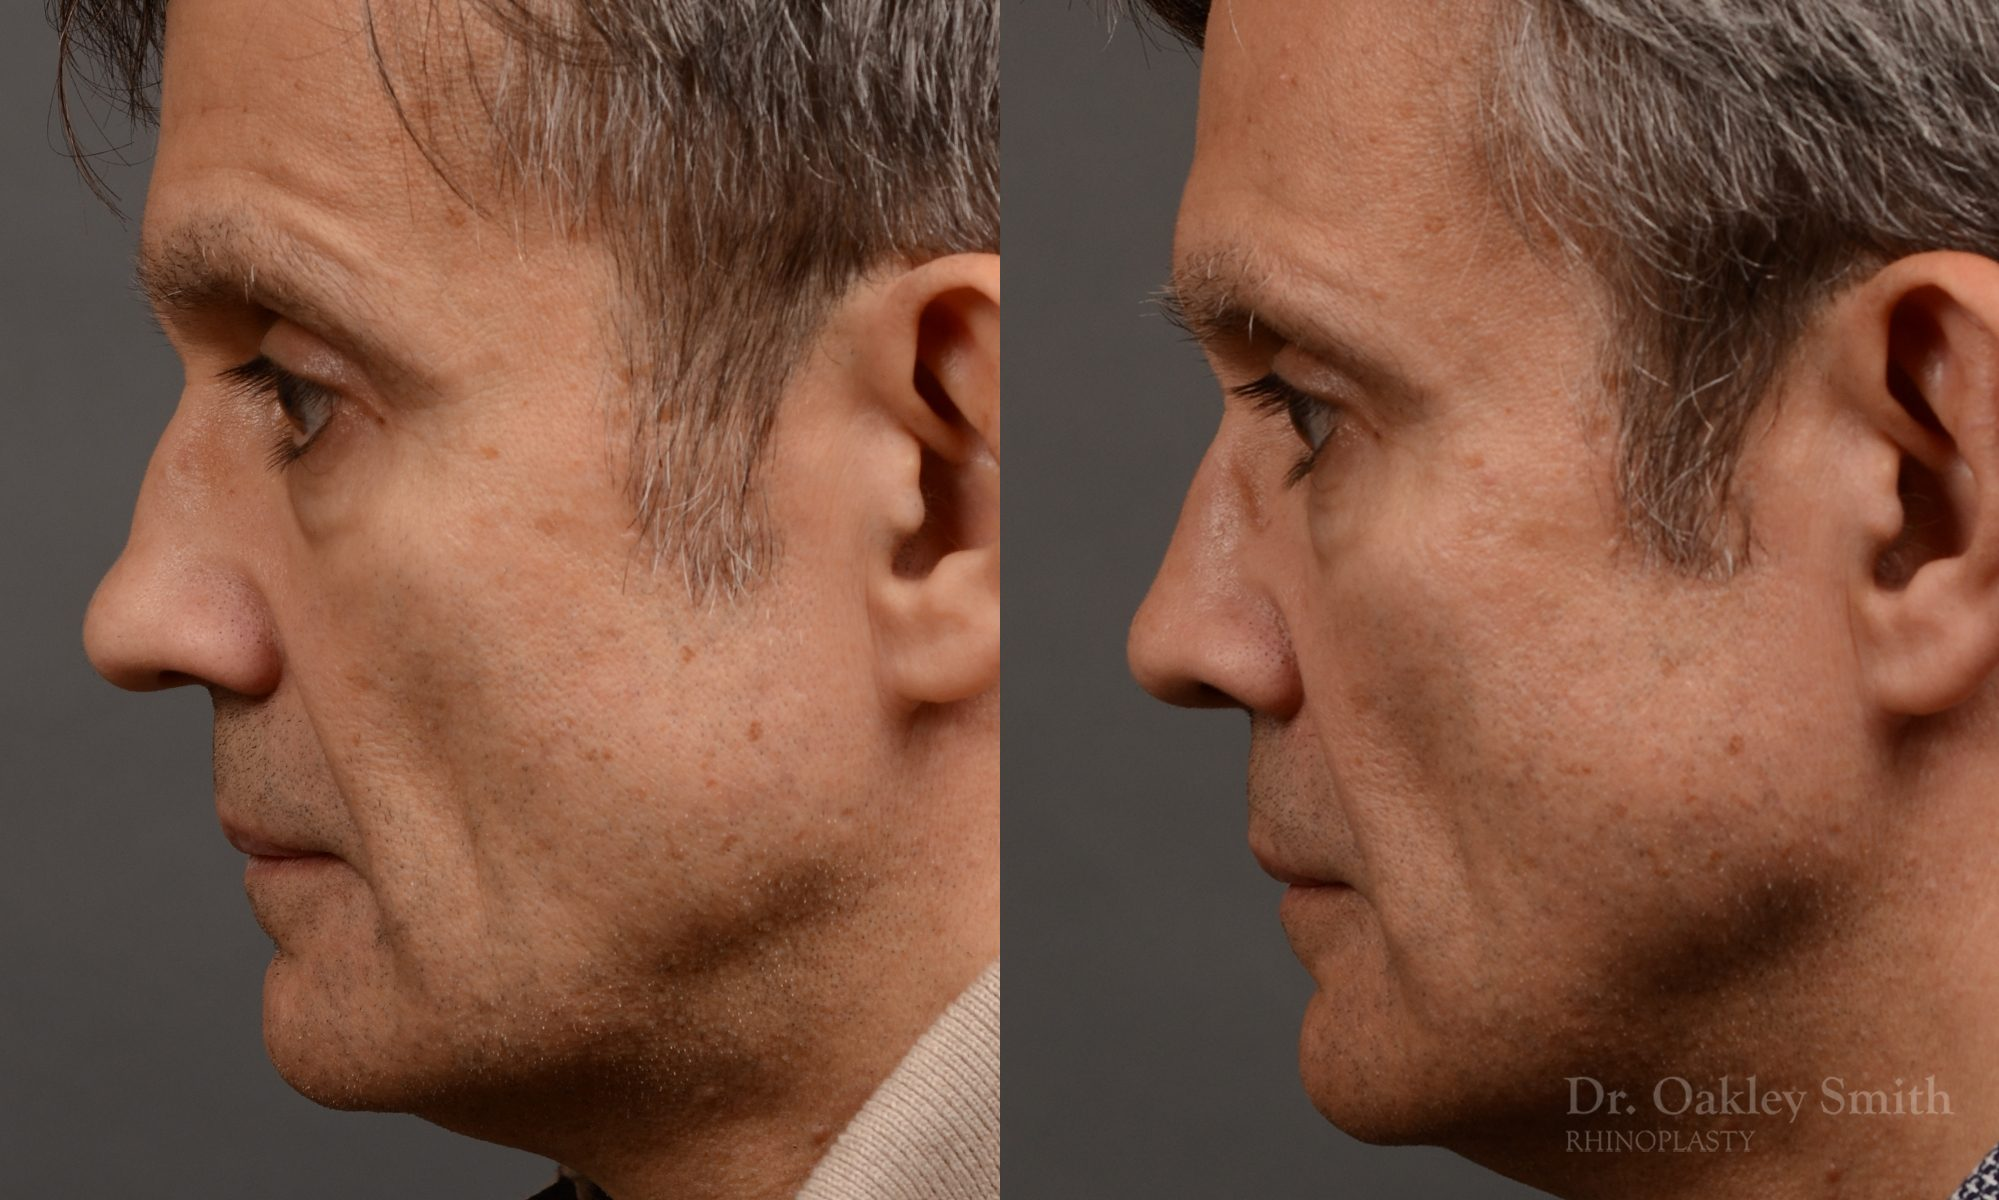 Revision Rhinoplasty - Rhinoplasty Nose Before and After Case 306